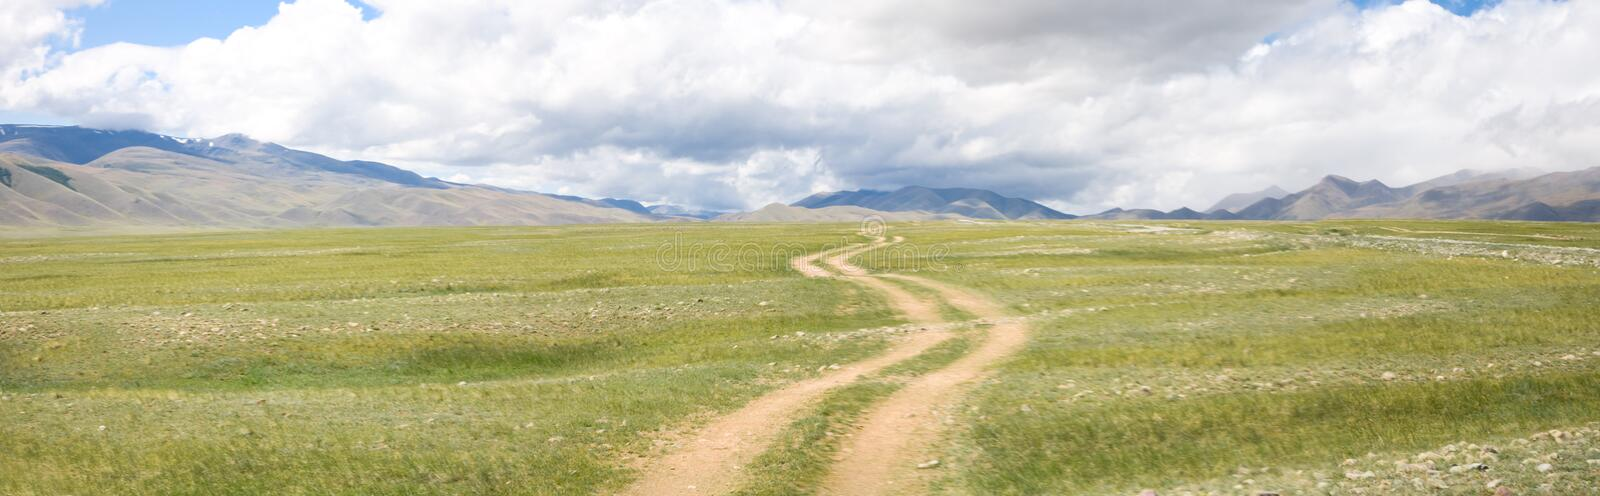 Road in the mountain steppes royalty free stock images